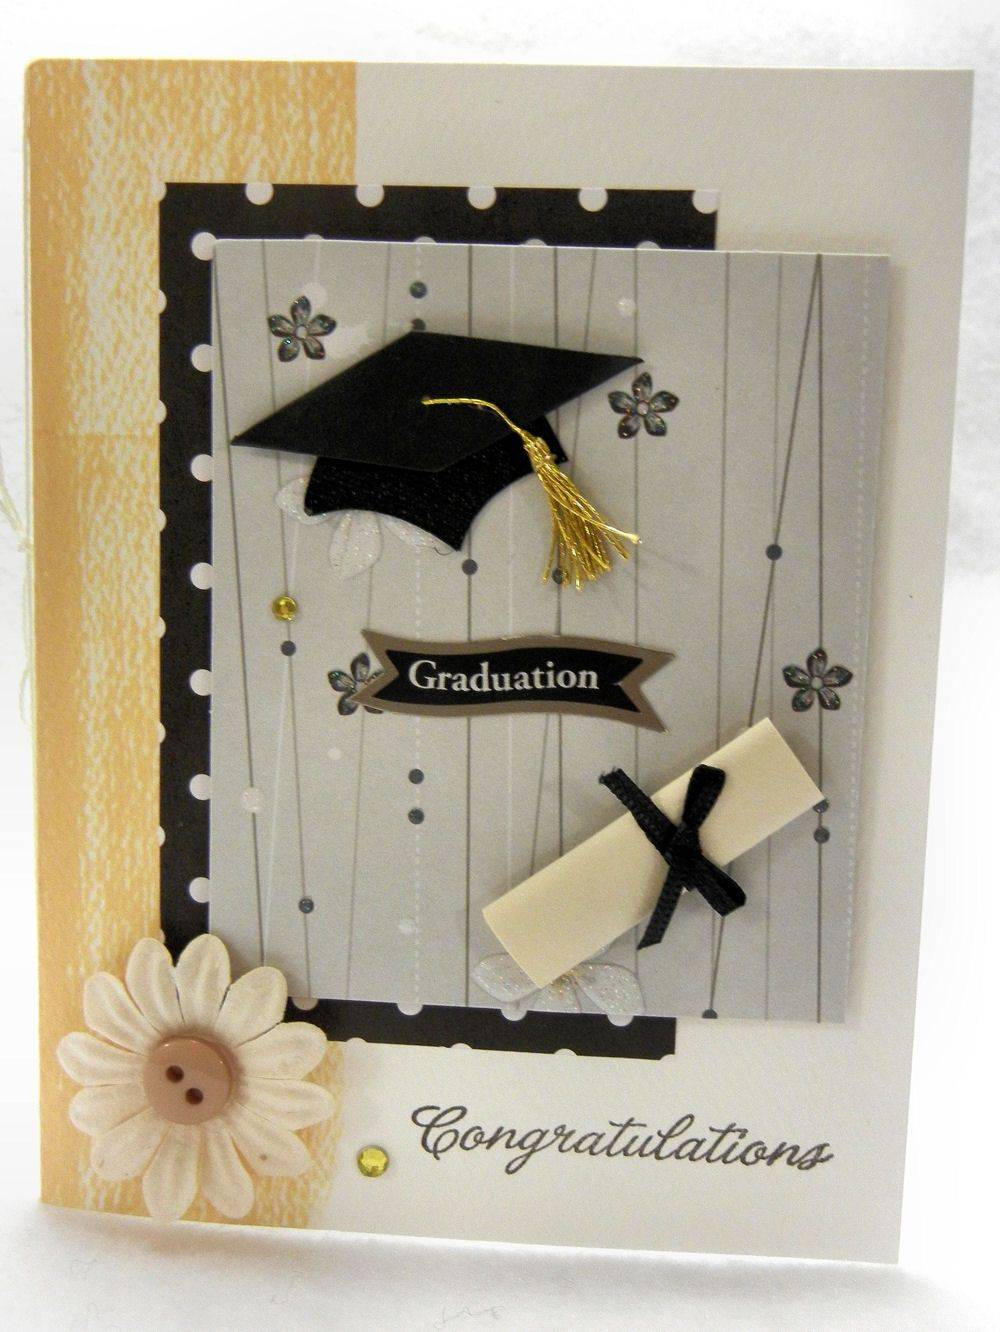 Graduation homemade cards google search graduation cards pinterest cards homemade and for Graduation announcements pinterest